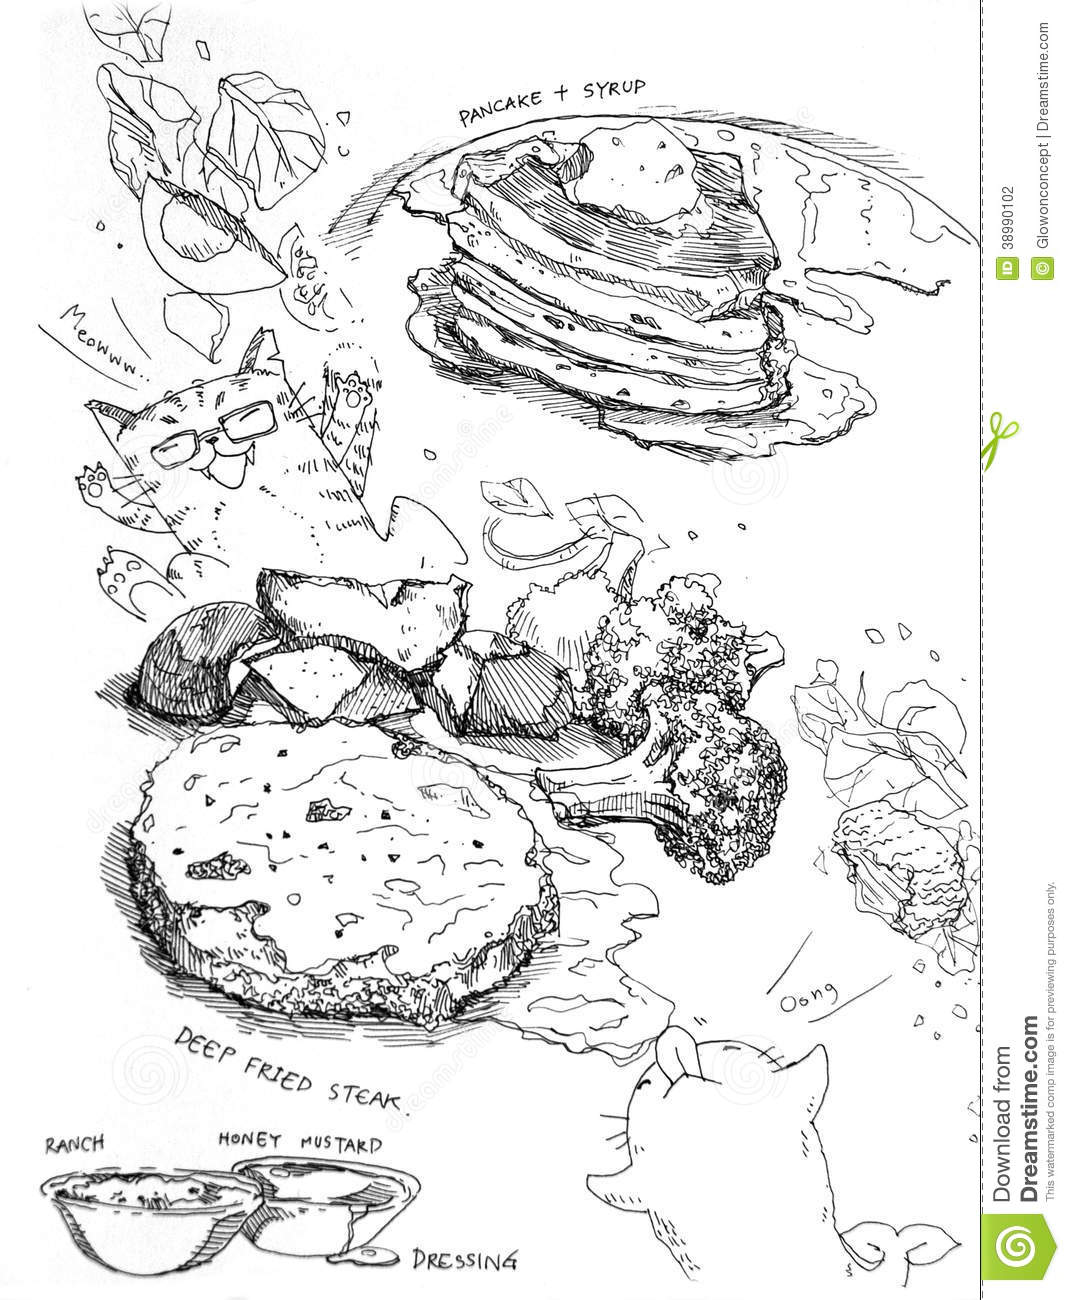 Pancake And Syrup And Steak With Vegetable Drawing Stock